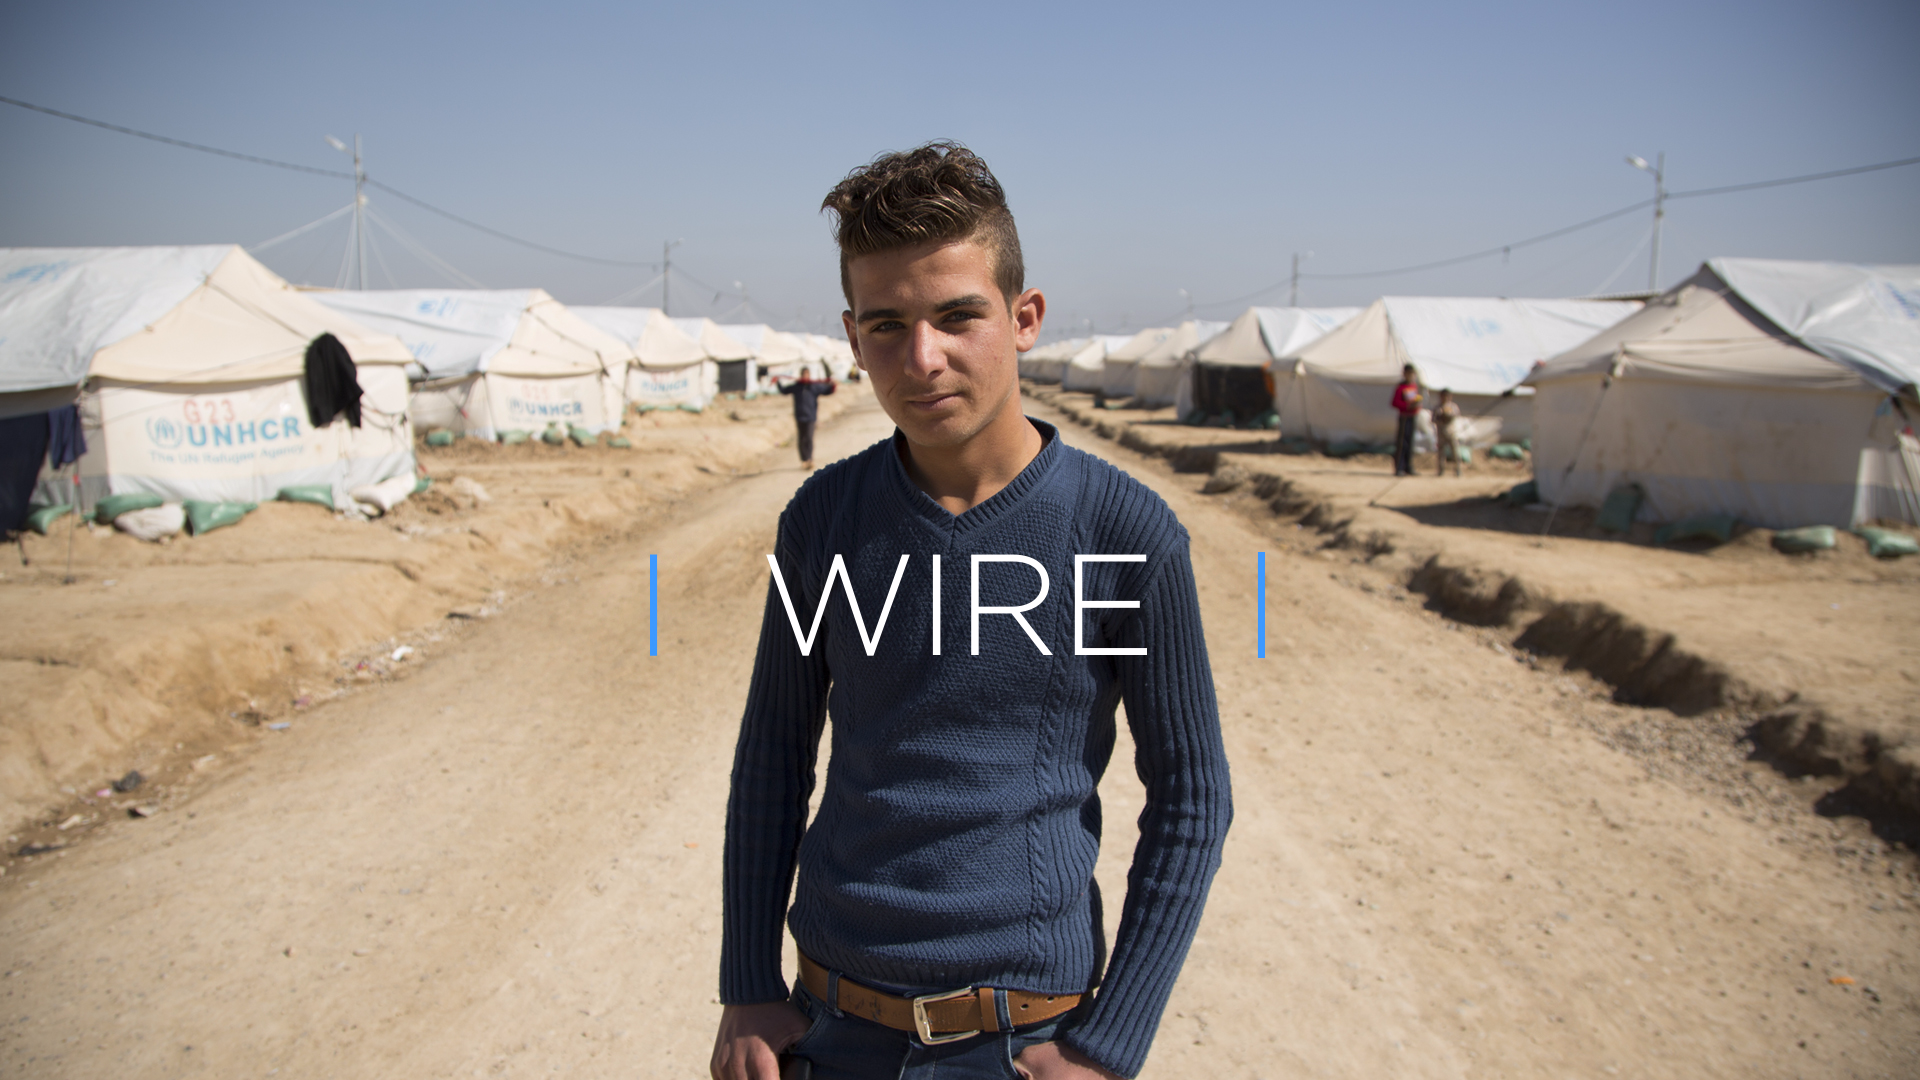 Escape From ISIS: The Story Of A 17-Year-Old's Road To Freedom